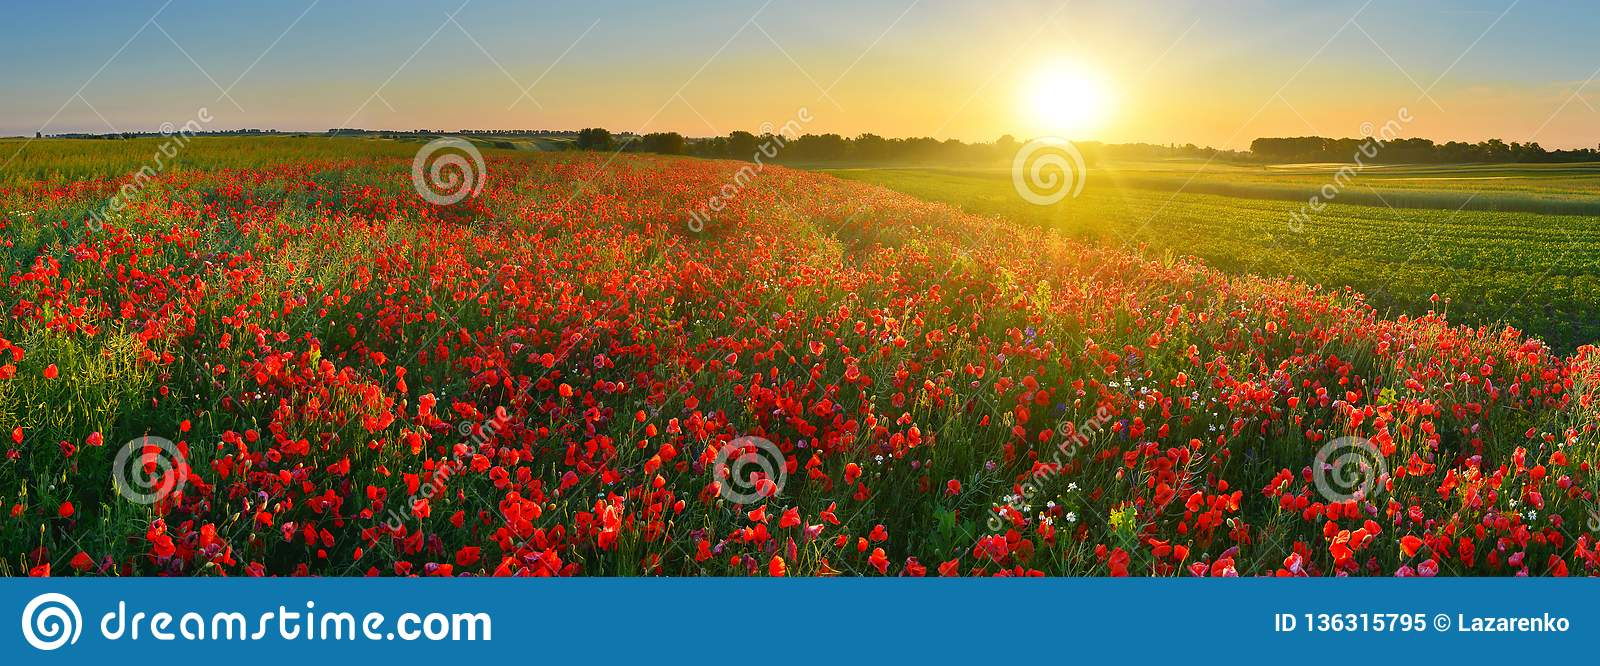 Rising sun above the field of red poppies in summer.